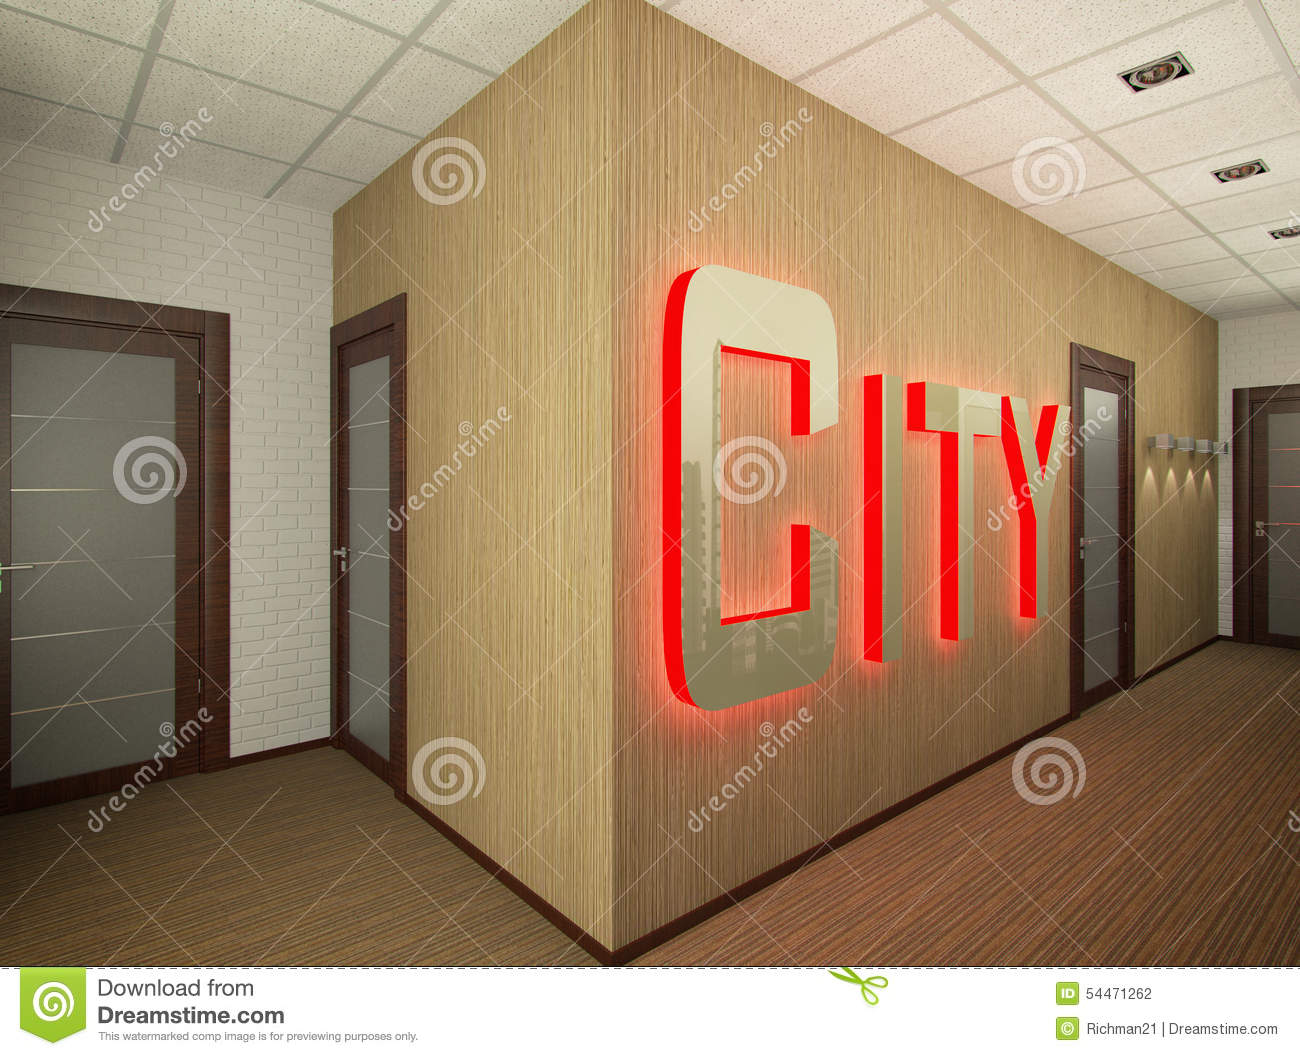 3d illustration of interior design of office stock for Real estate office interior design